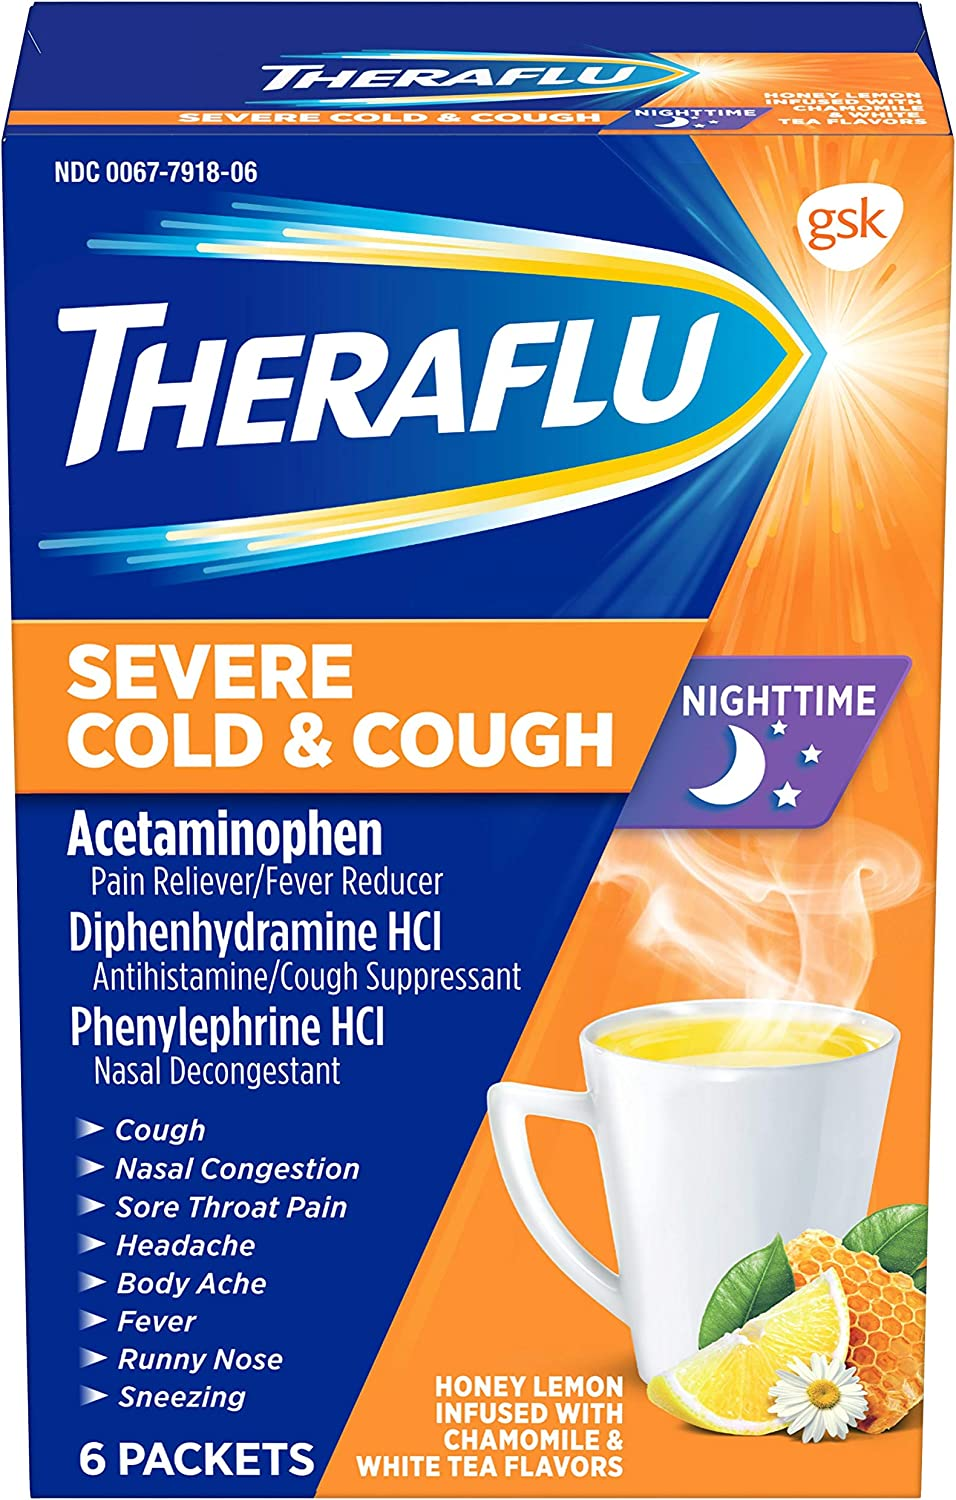 Theraflu Severe Cold and Cough Medicine for Adults and Children 12+, Multisymptom Nighttime Cold and Flu Relief Powder Packets, Honey Lemon Infused with Chamomile and White Tea Flavors - 6 Count